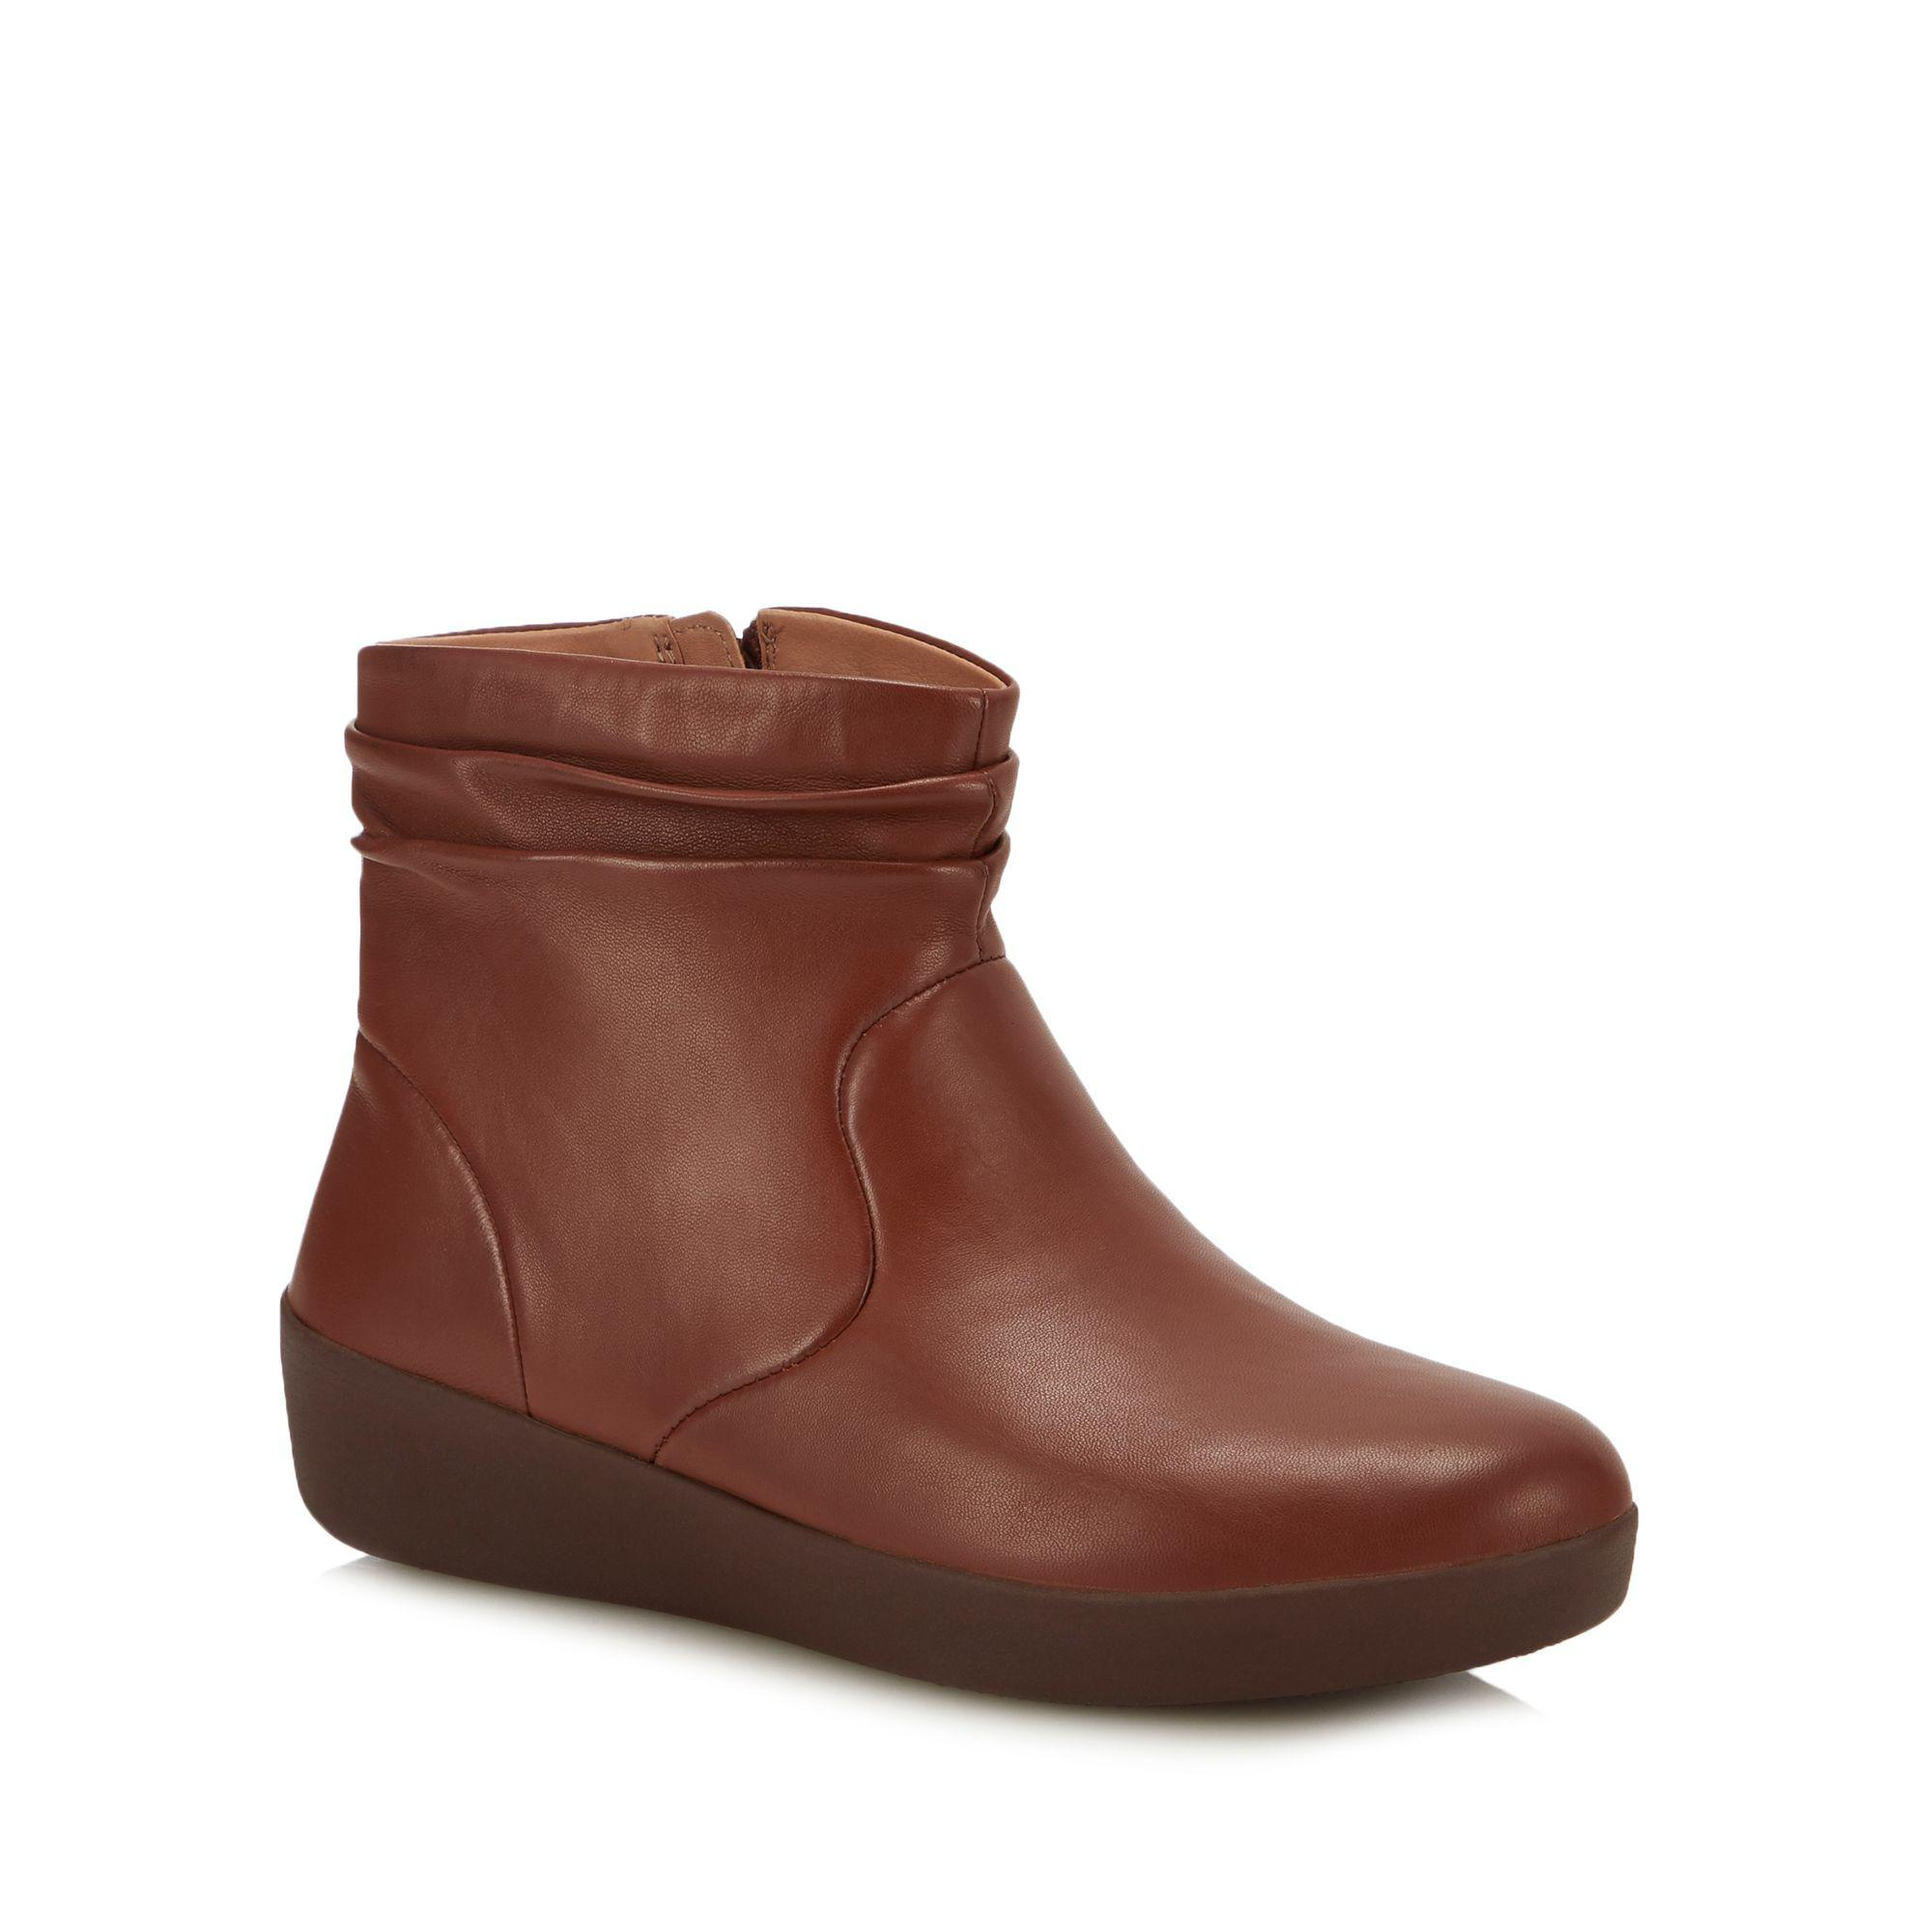 30418f83b589e8 Fitflop Tan Leather  skatebootie  Ankle Boots in Brown - Lyst